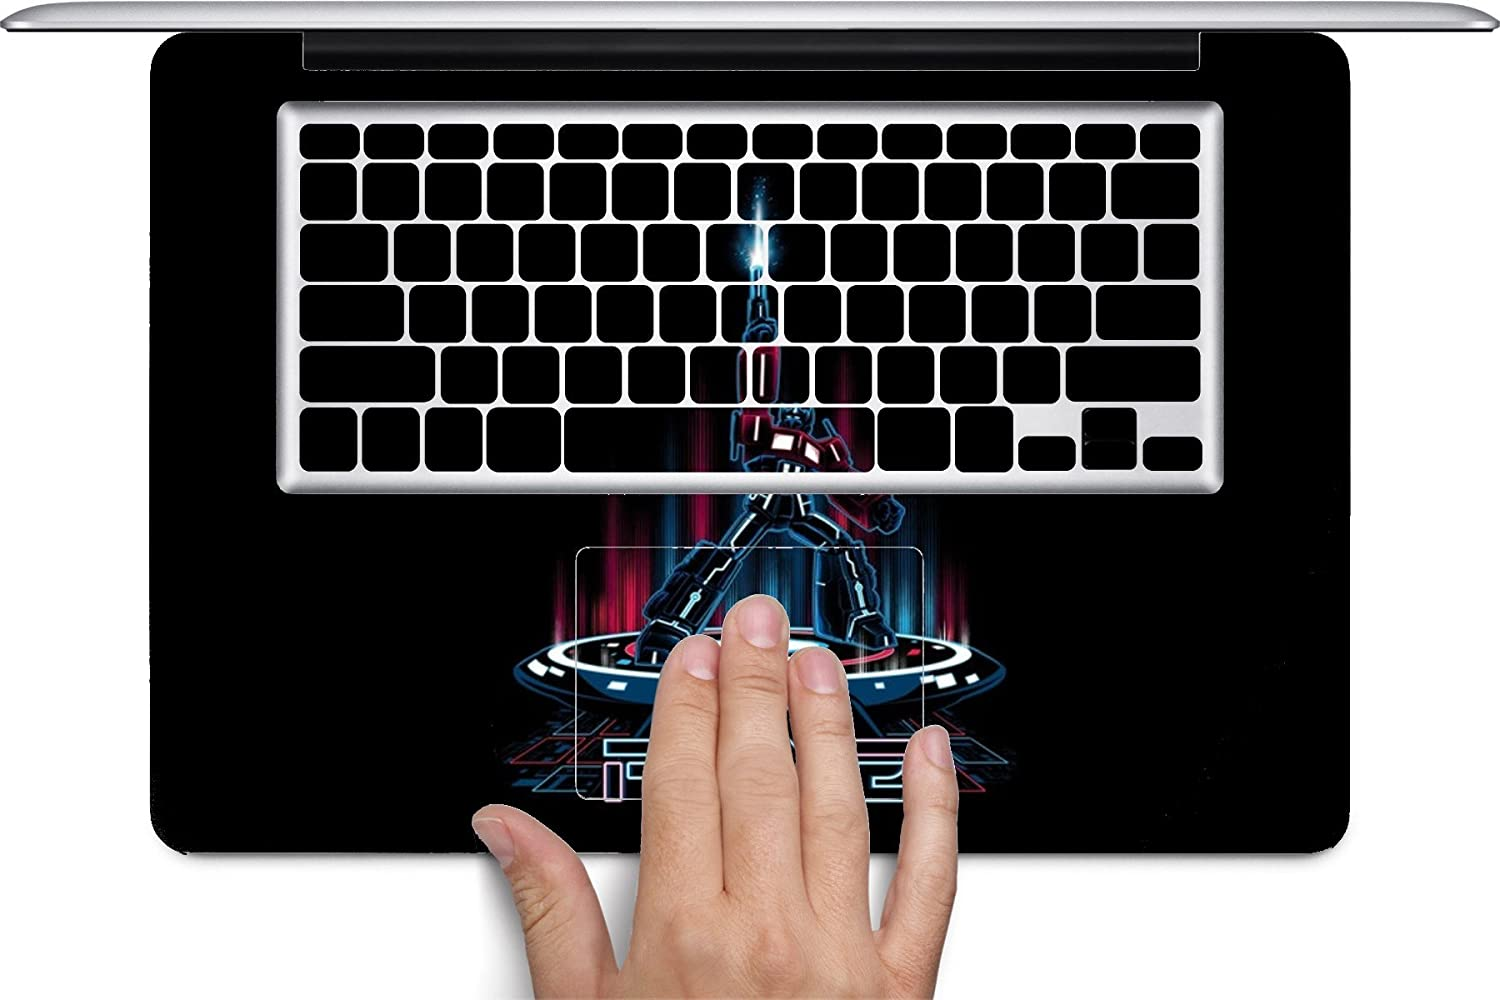 Optimus Prime Tron Crossover Art Keyboard Decals by MWCustoms for 12 inch MacBook